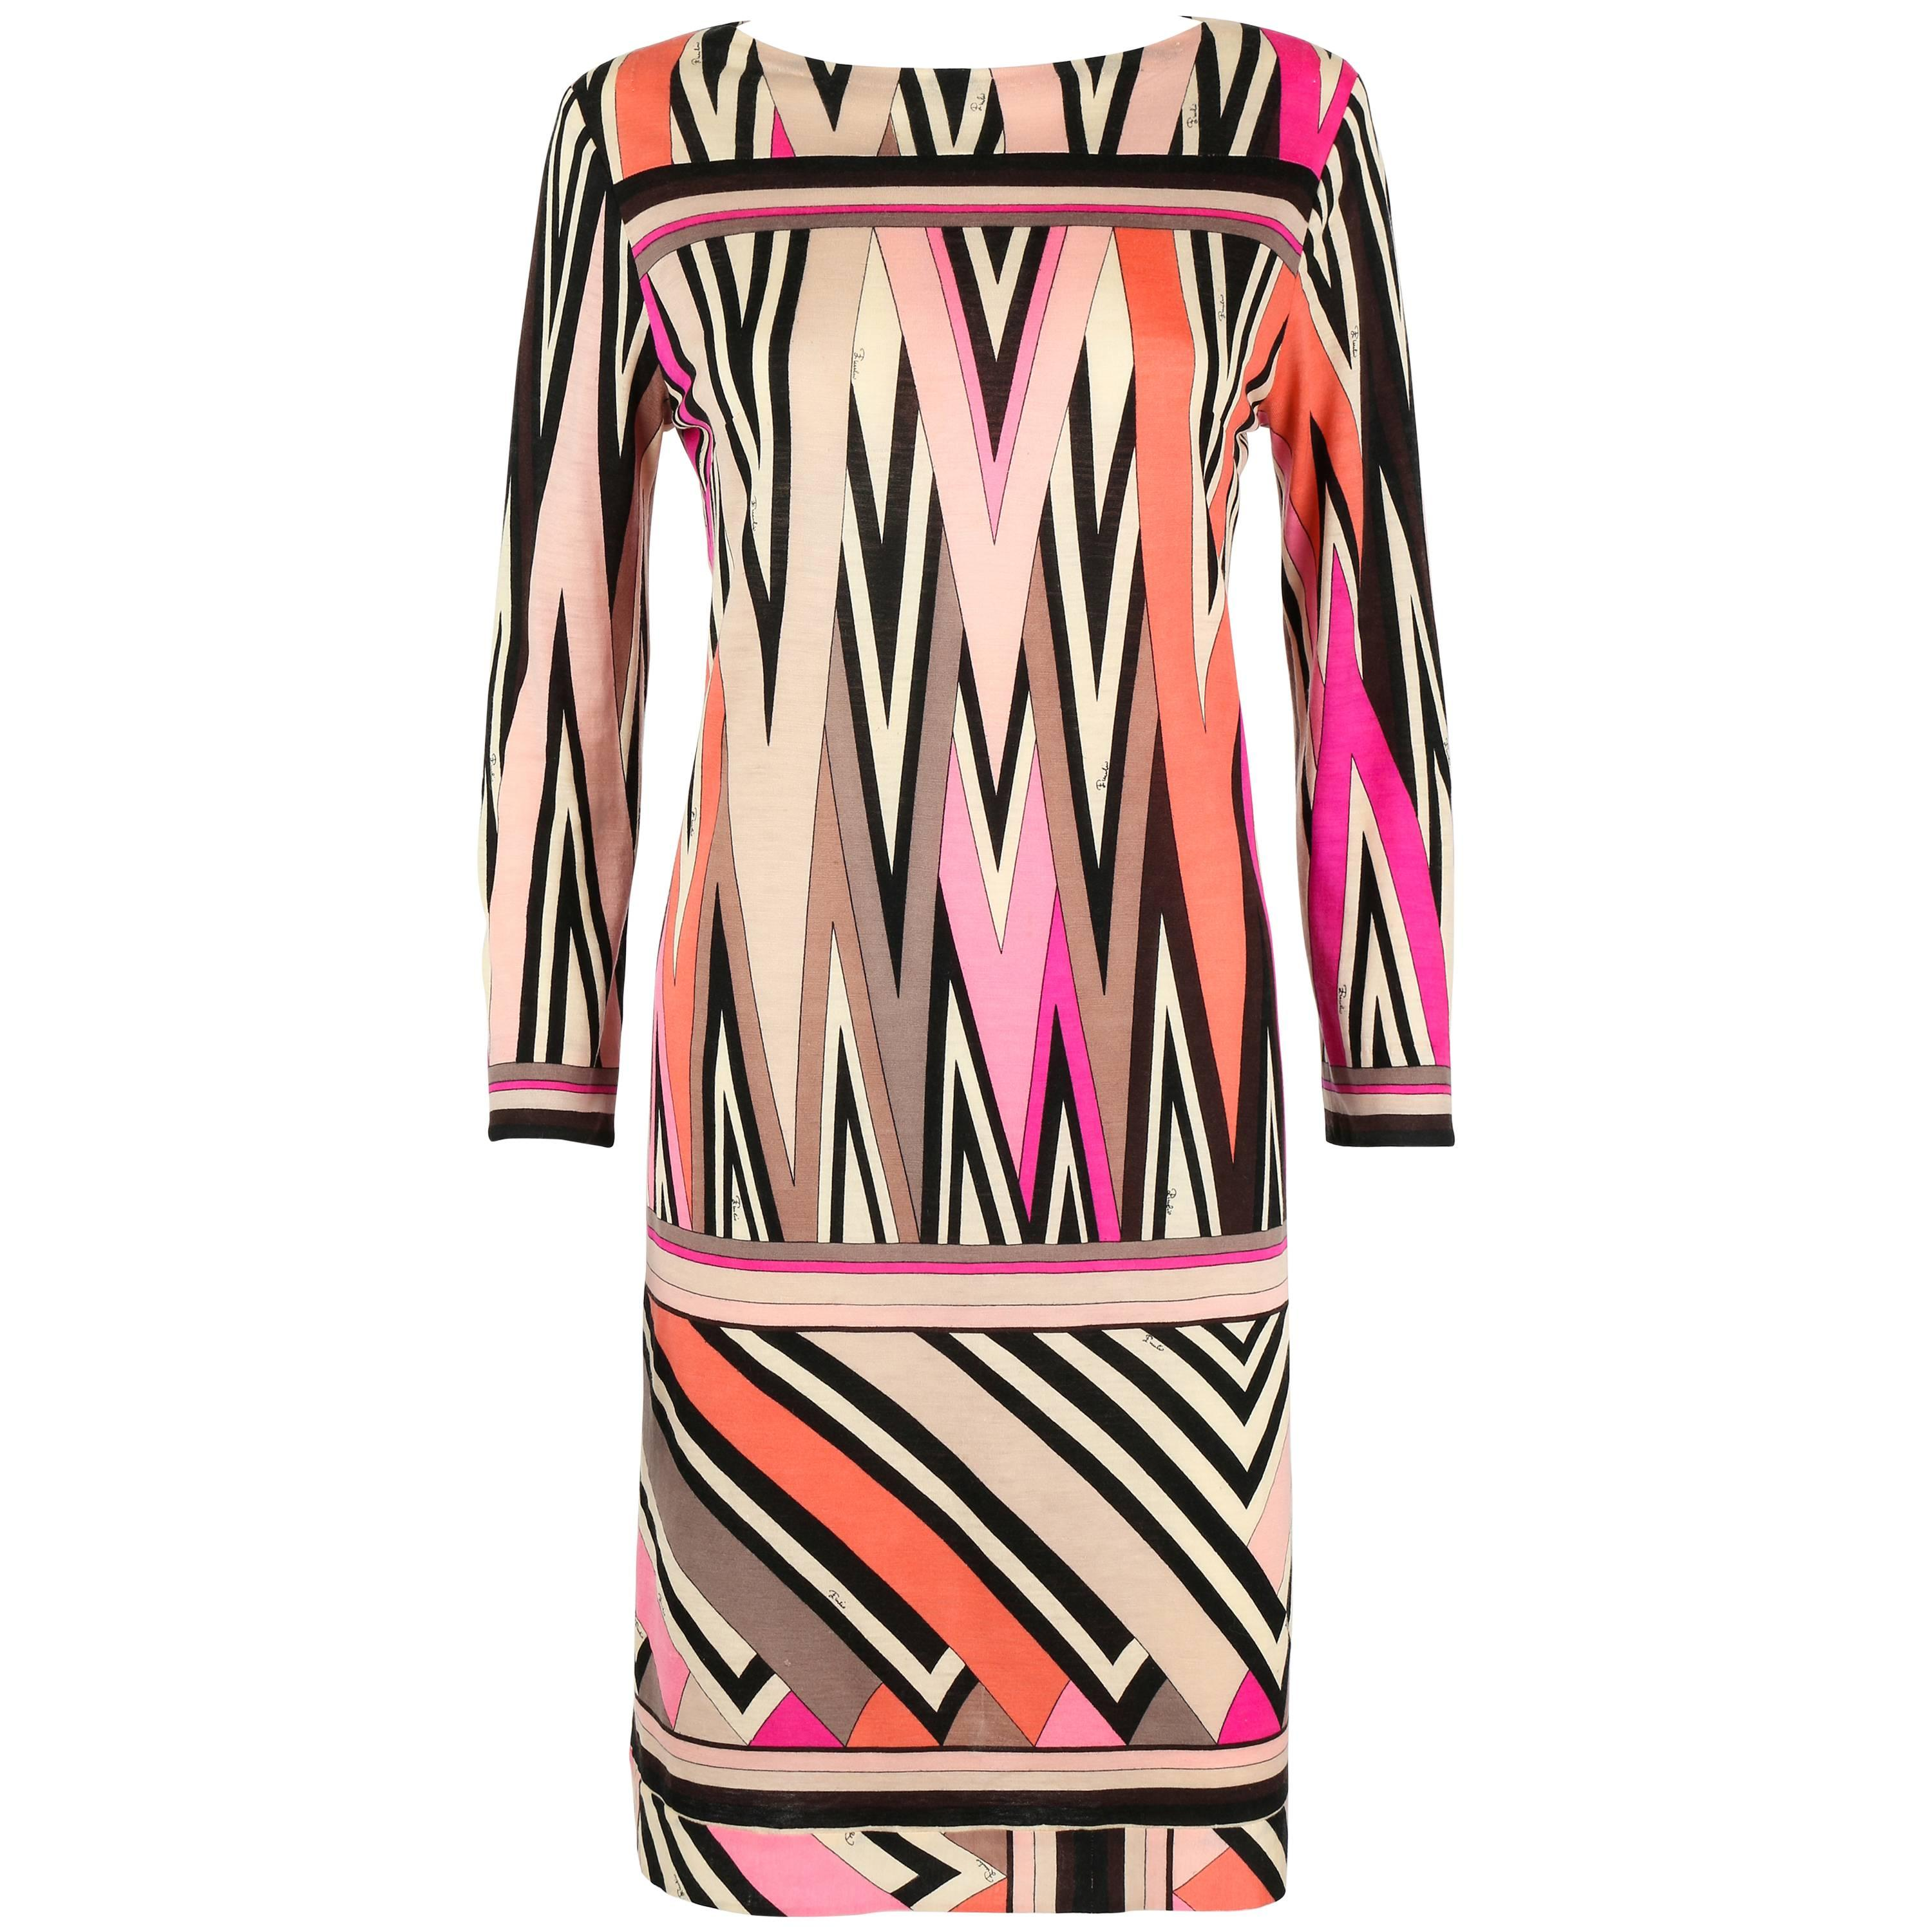 Buy Pucci Emilio dress replica pictures picture trends